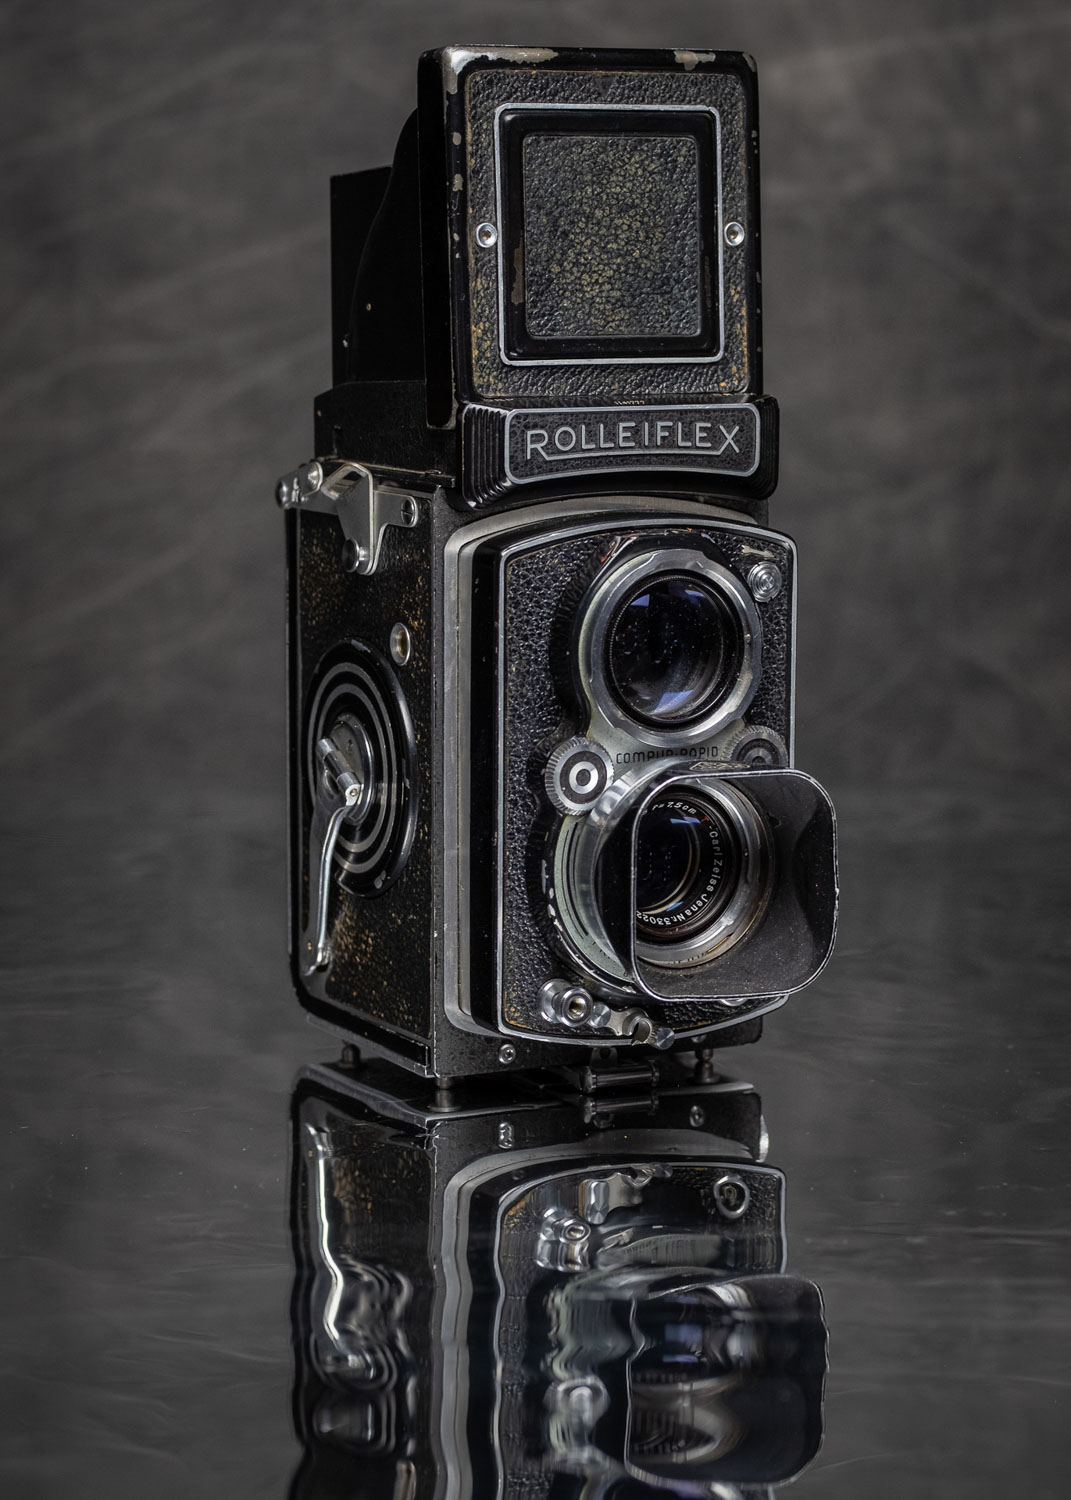 My favorite camera to shoot today - 1949 Rolleiflex